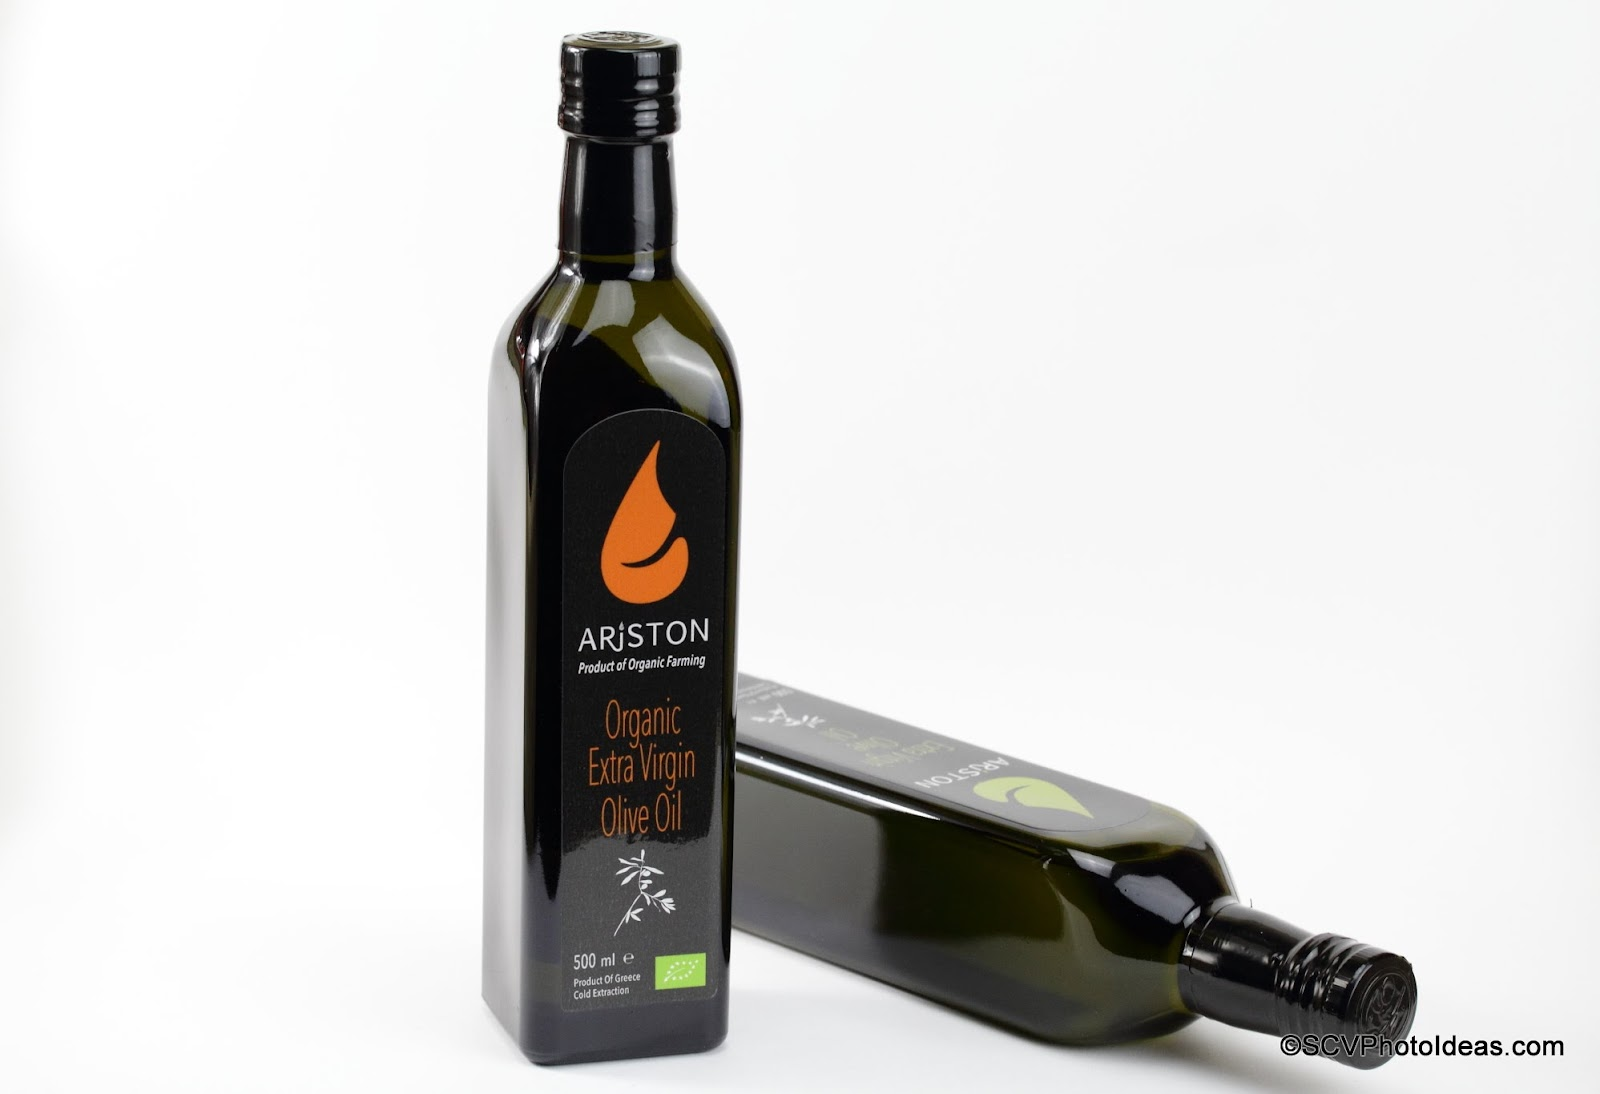 Ariston Organic Extra Virgin Olive Oil - Standing